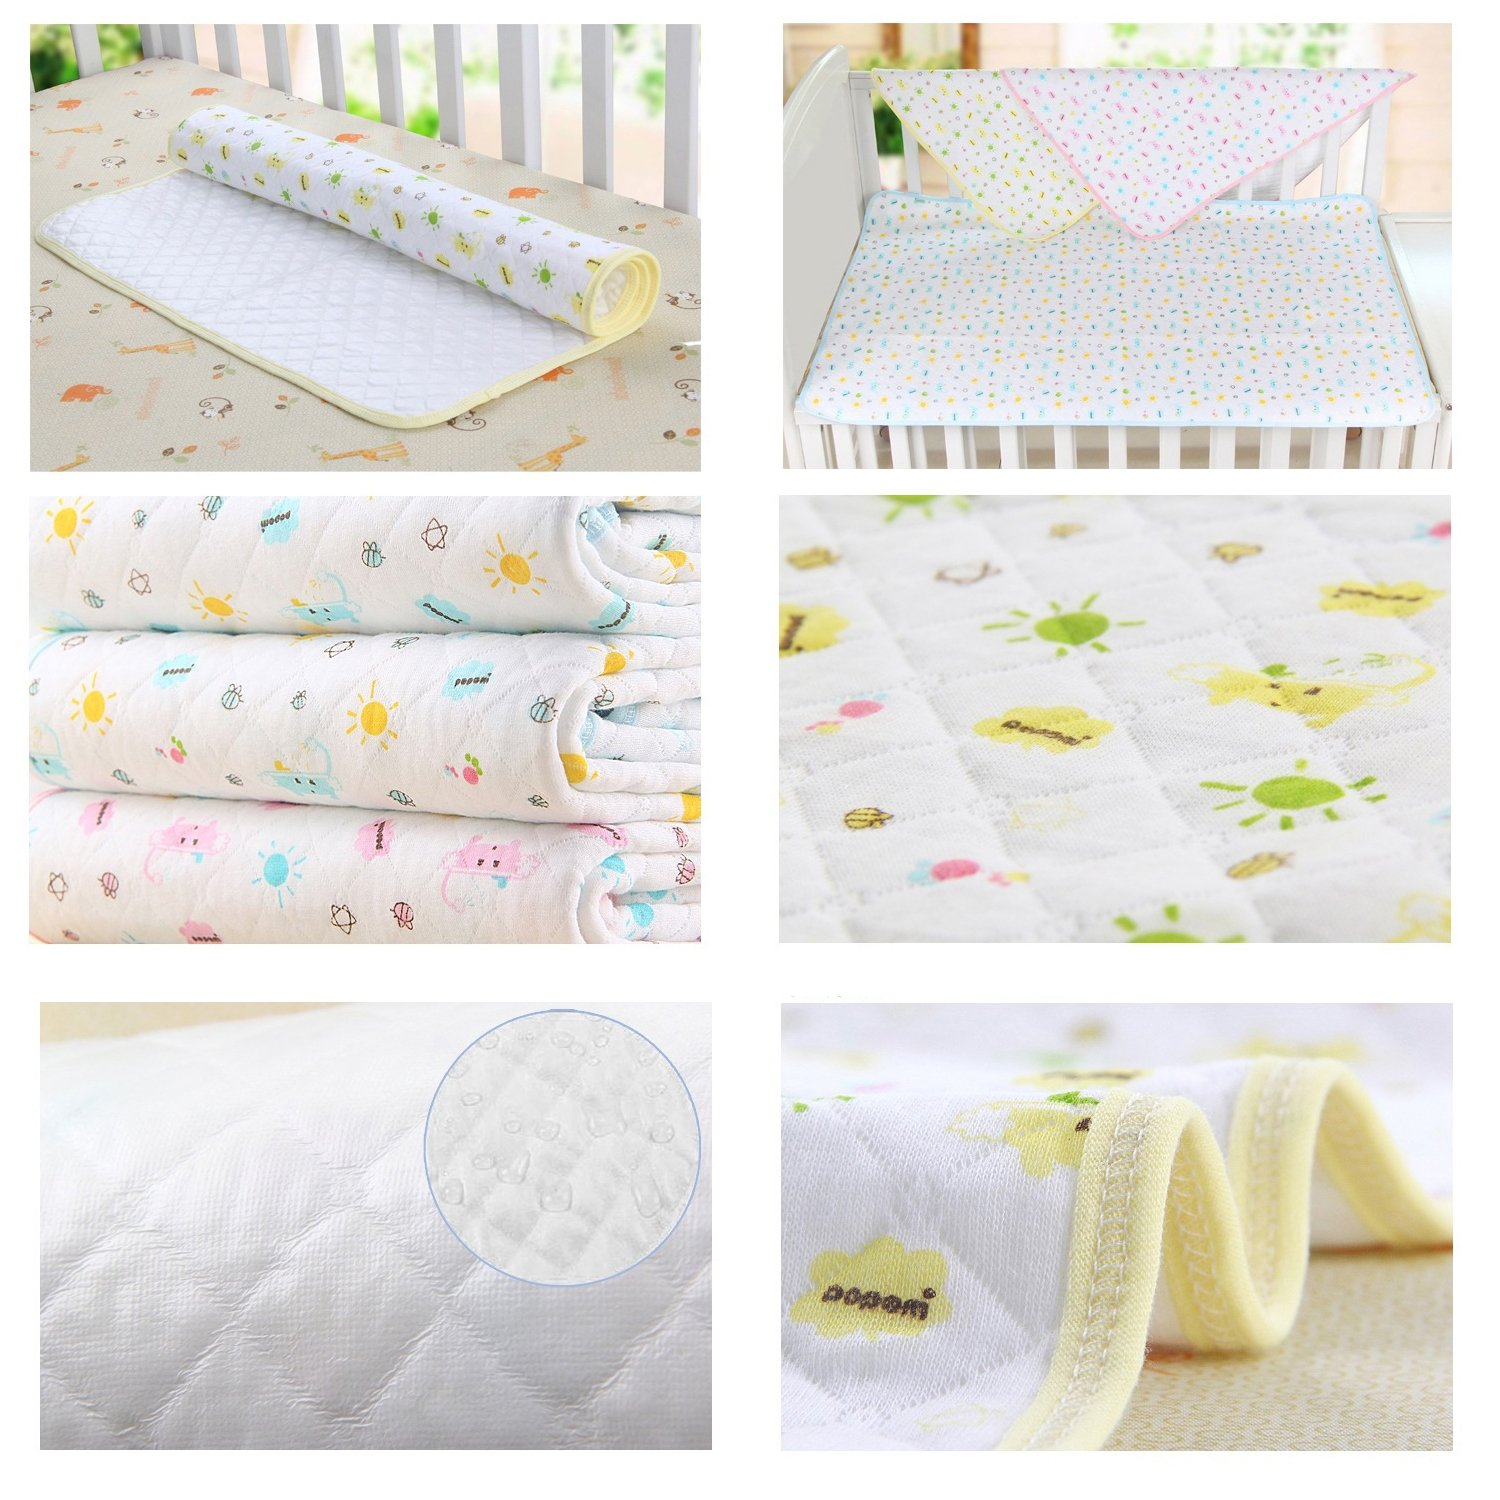 Baby Kid Waterproof Changing Pads - Breathable Mattress Pad Diapering Sheet Protector Menstrual Pads Pack of 3 (L (27.5 x 41.3 Inch)) by MBJERRY (Image #5)